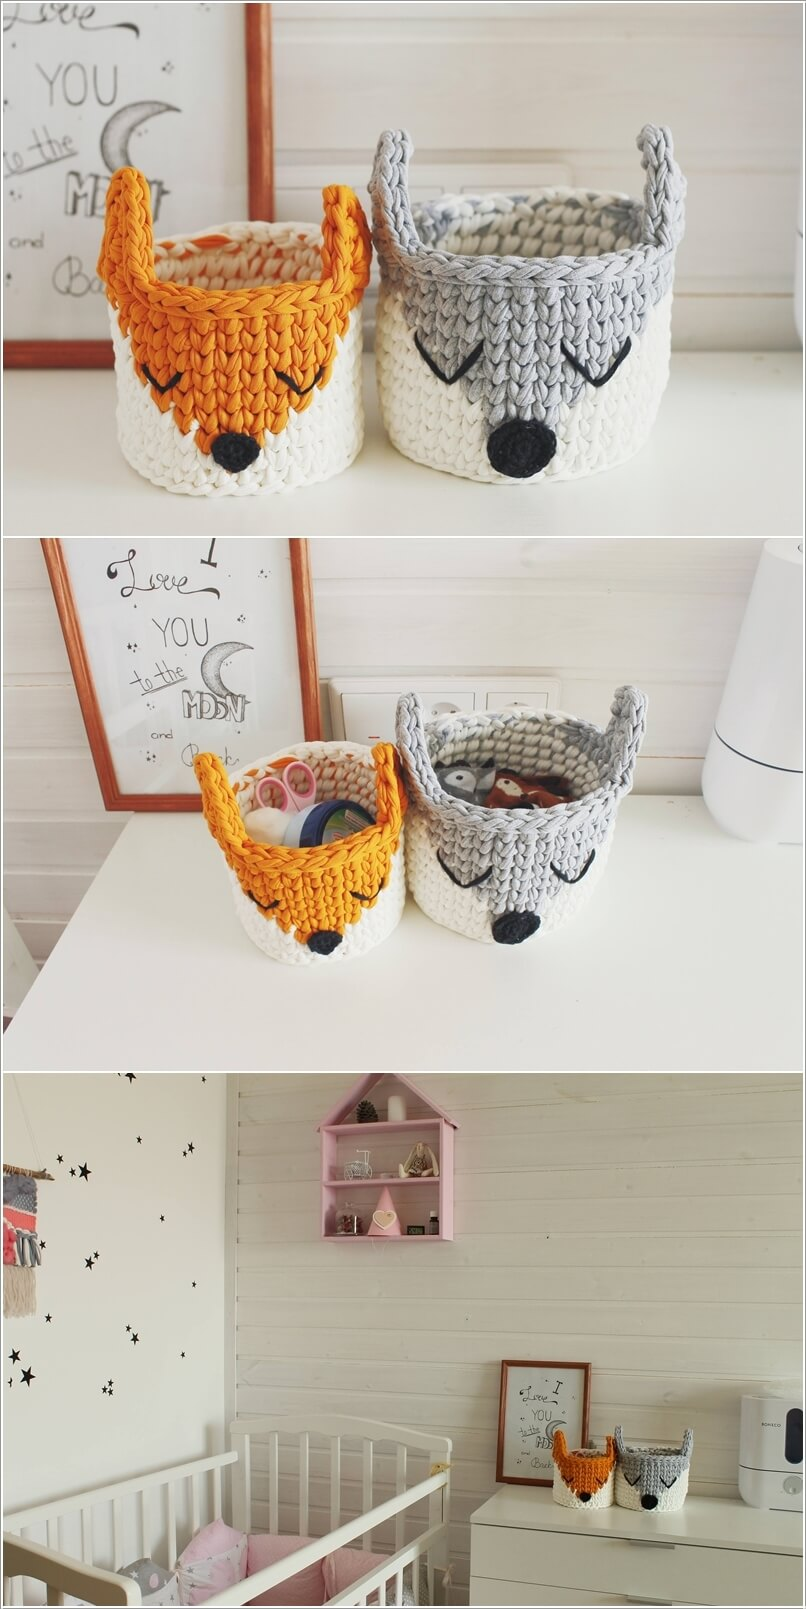 Cute Ideas To Decorate A Kids Room With Crochet